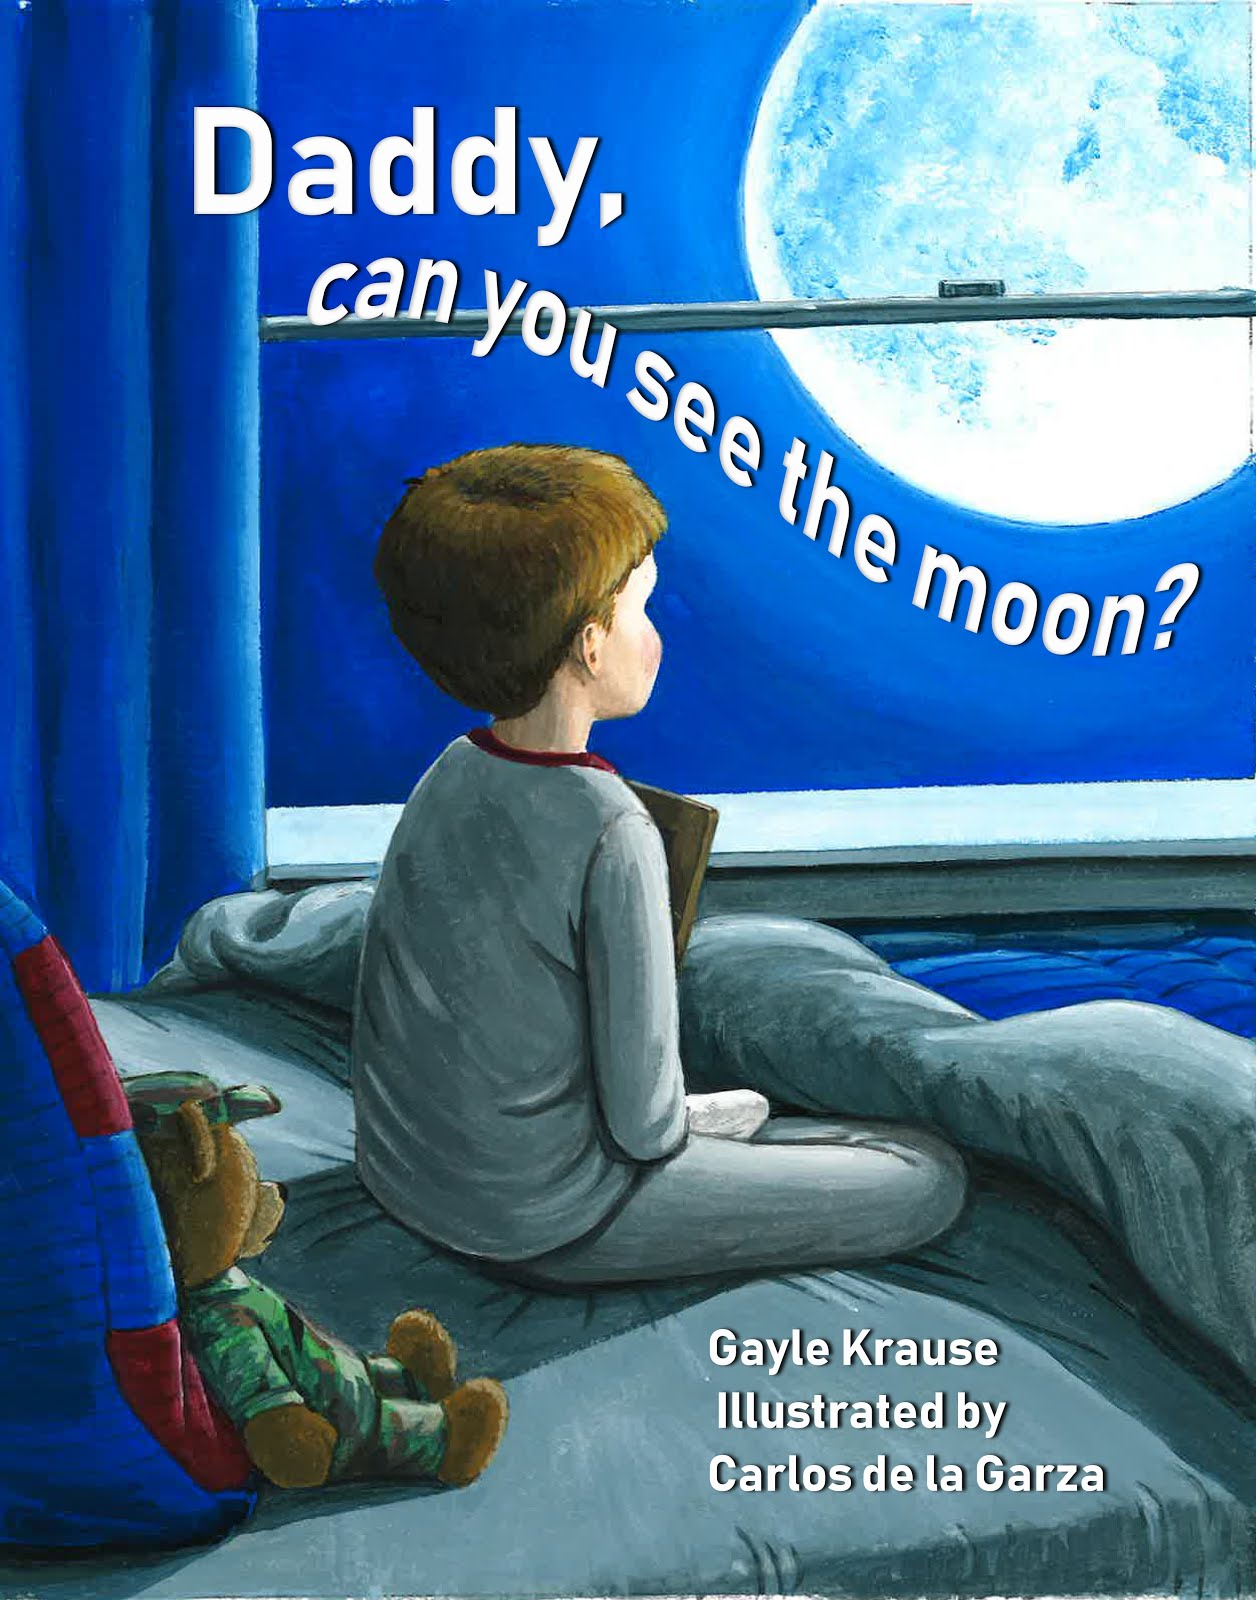 DADDY, CAN YOU SEE THE MOON?